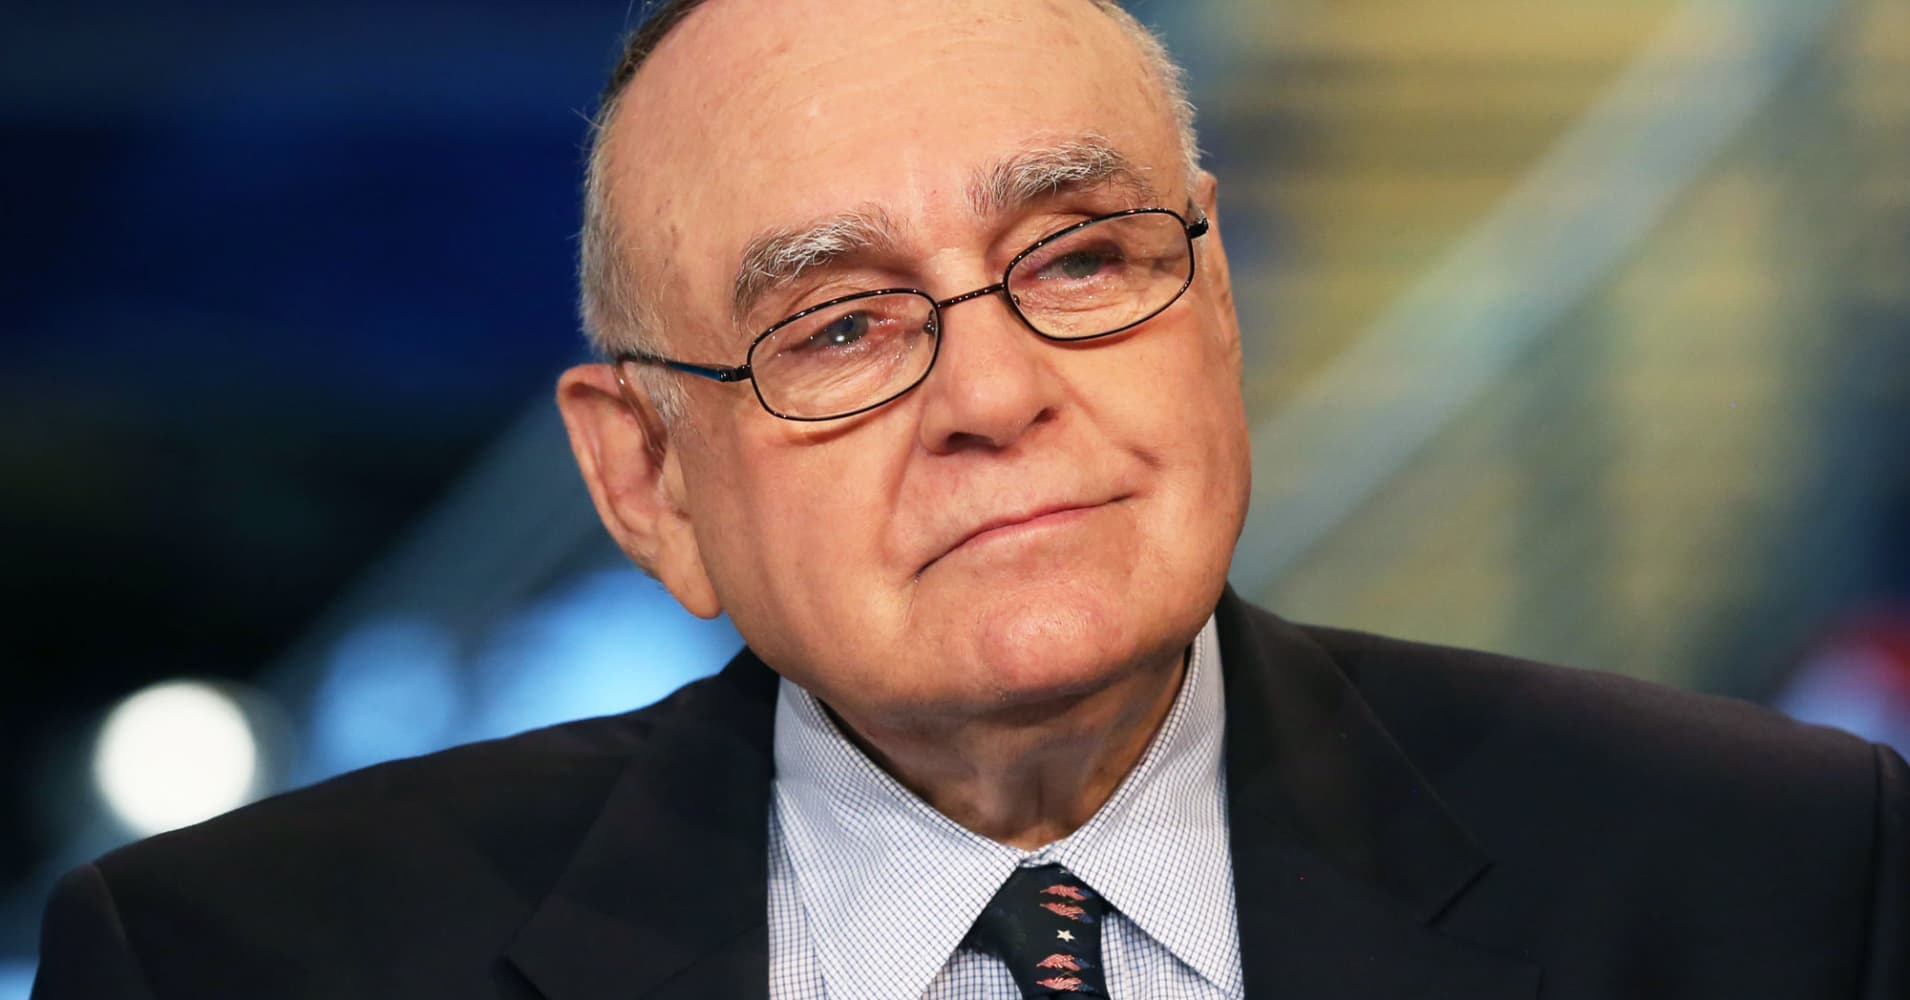 Omega's Cooperman loses bid to dismiss SEC's alleged insider trading case